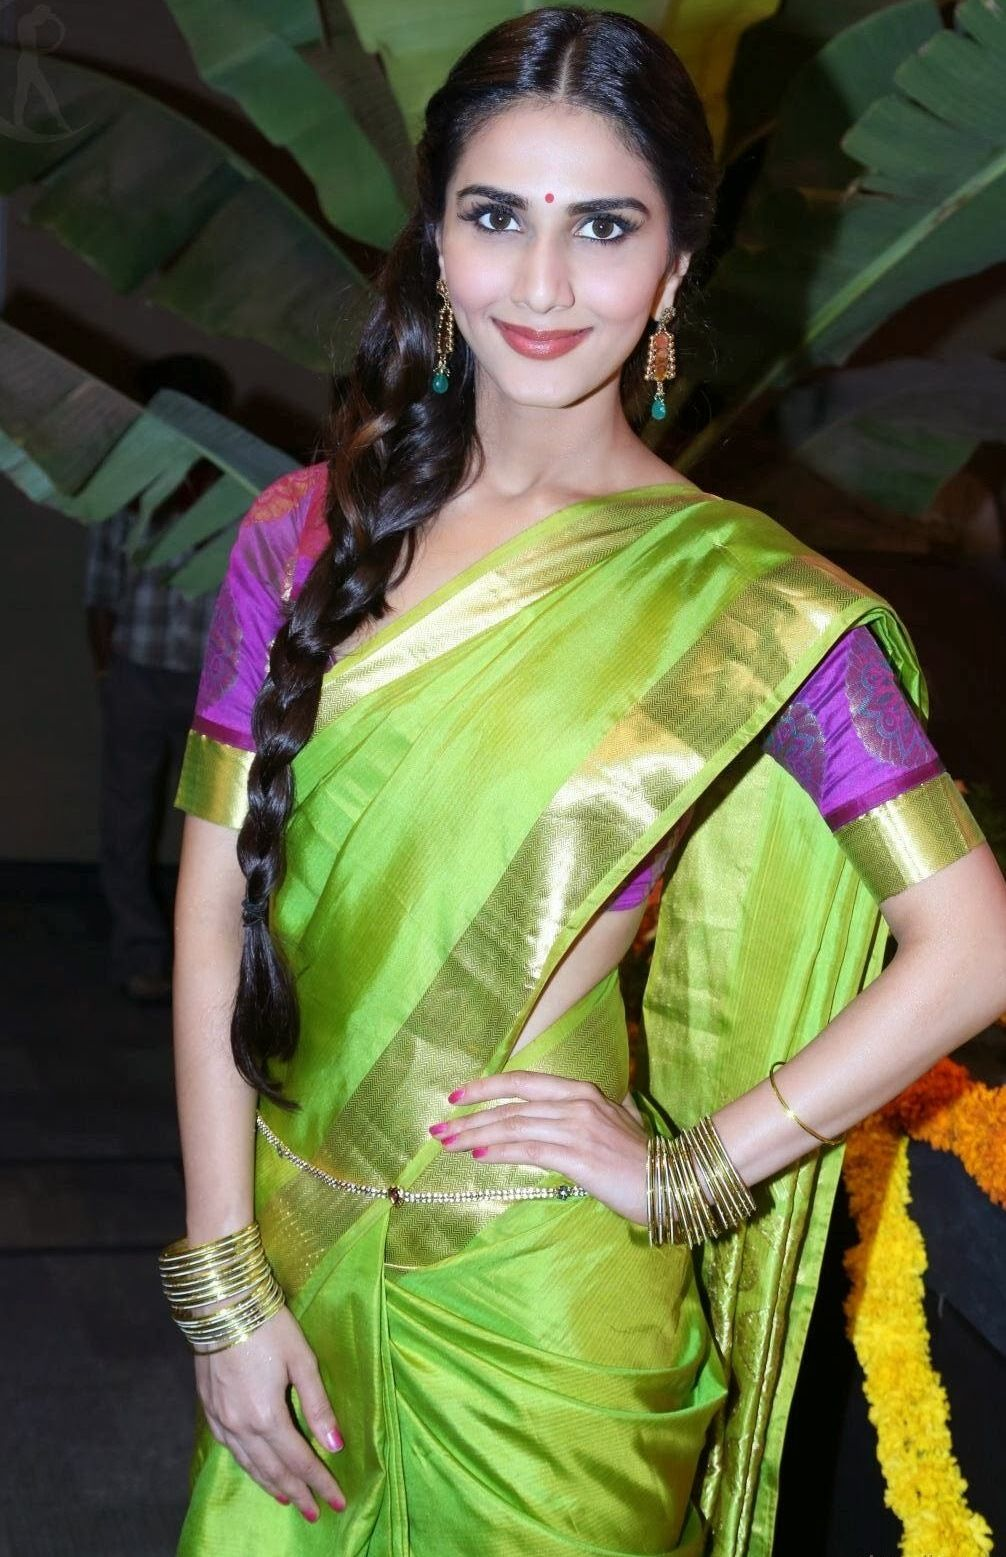 vaani-kapoor-reveals-too-much-in-a-saree